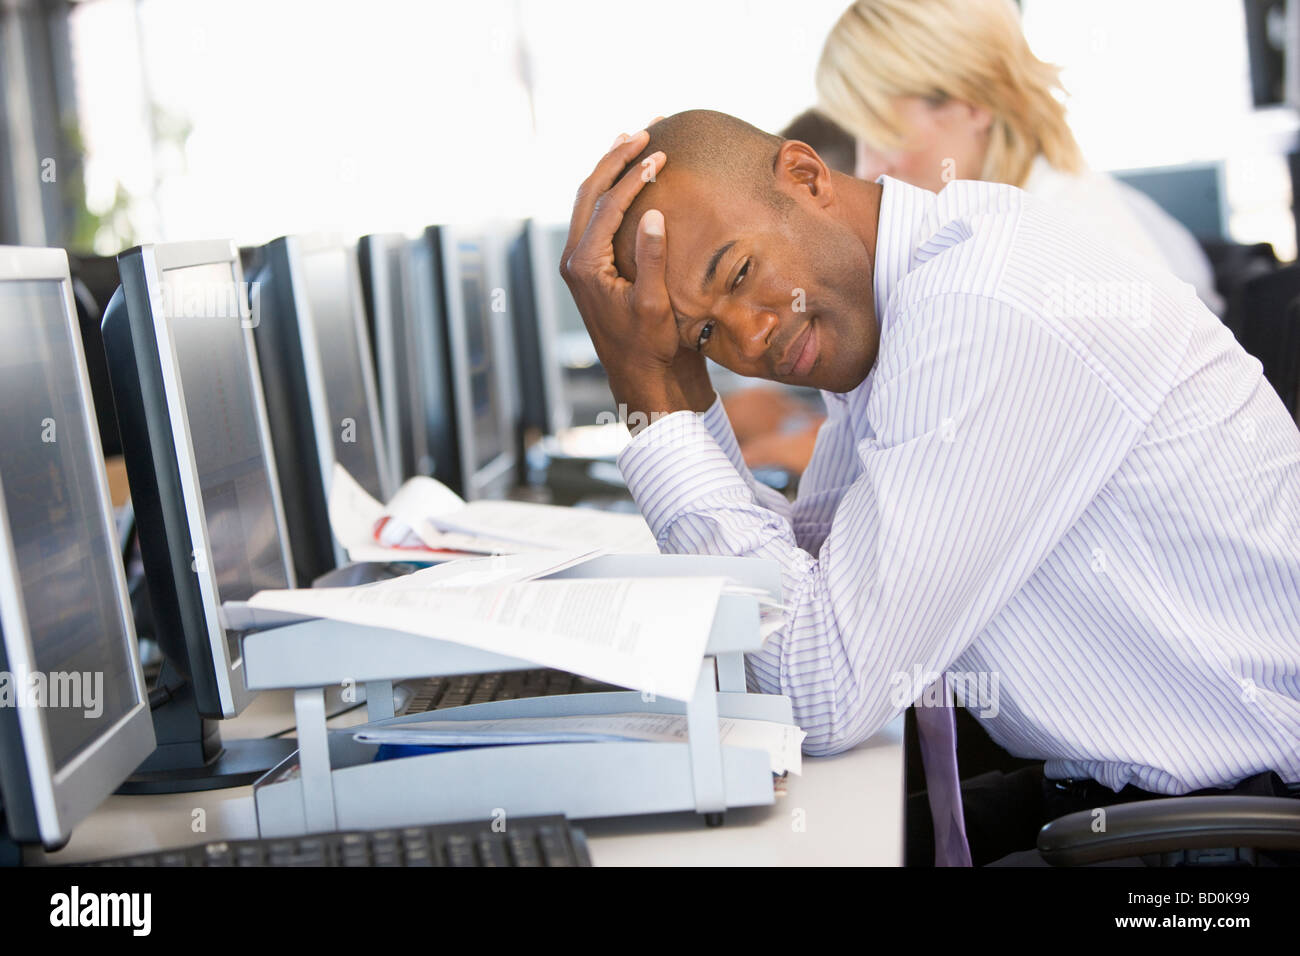 Stock Trader Looking Frustrated - Stock Image